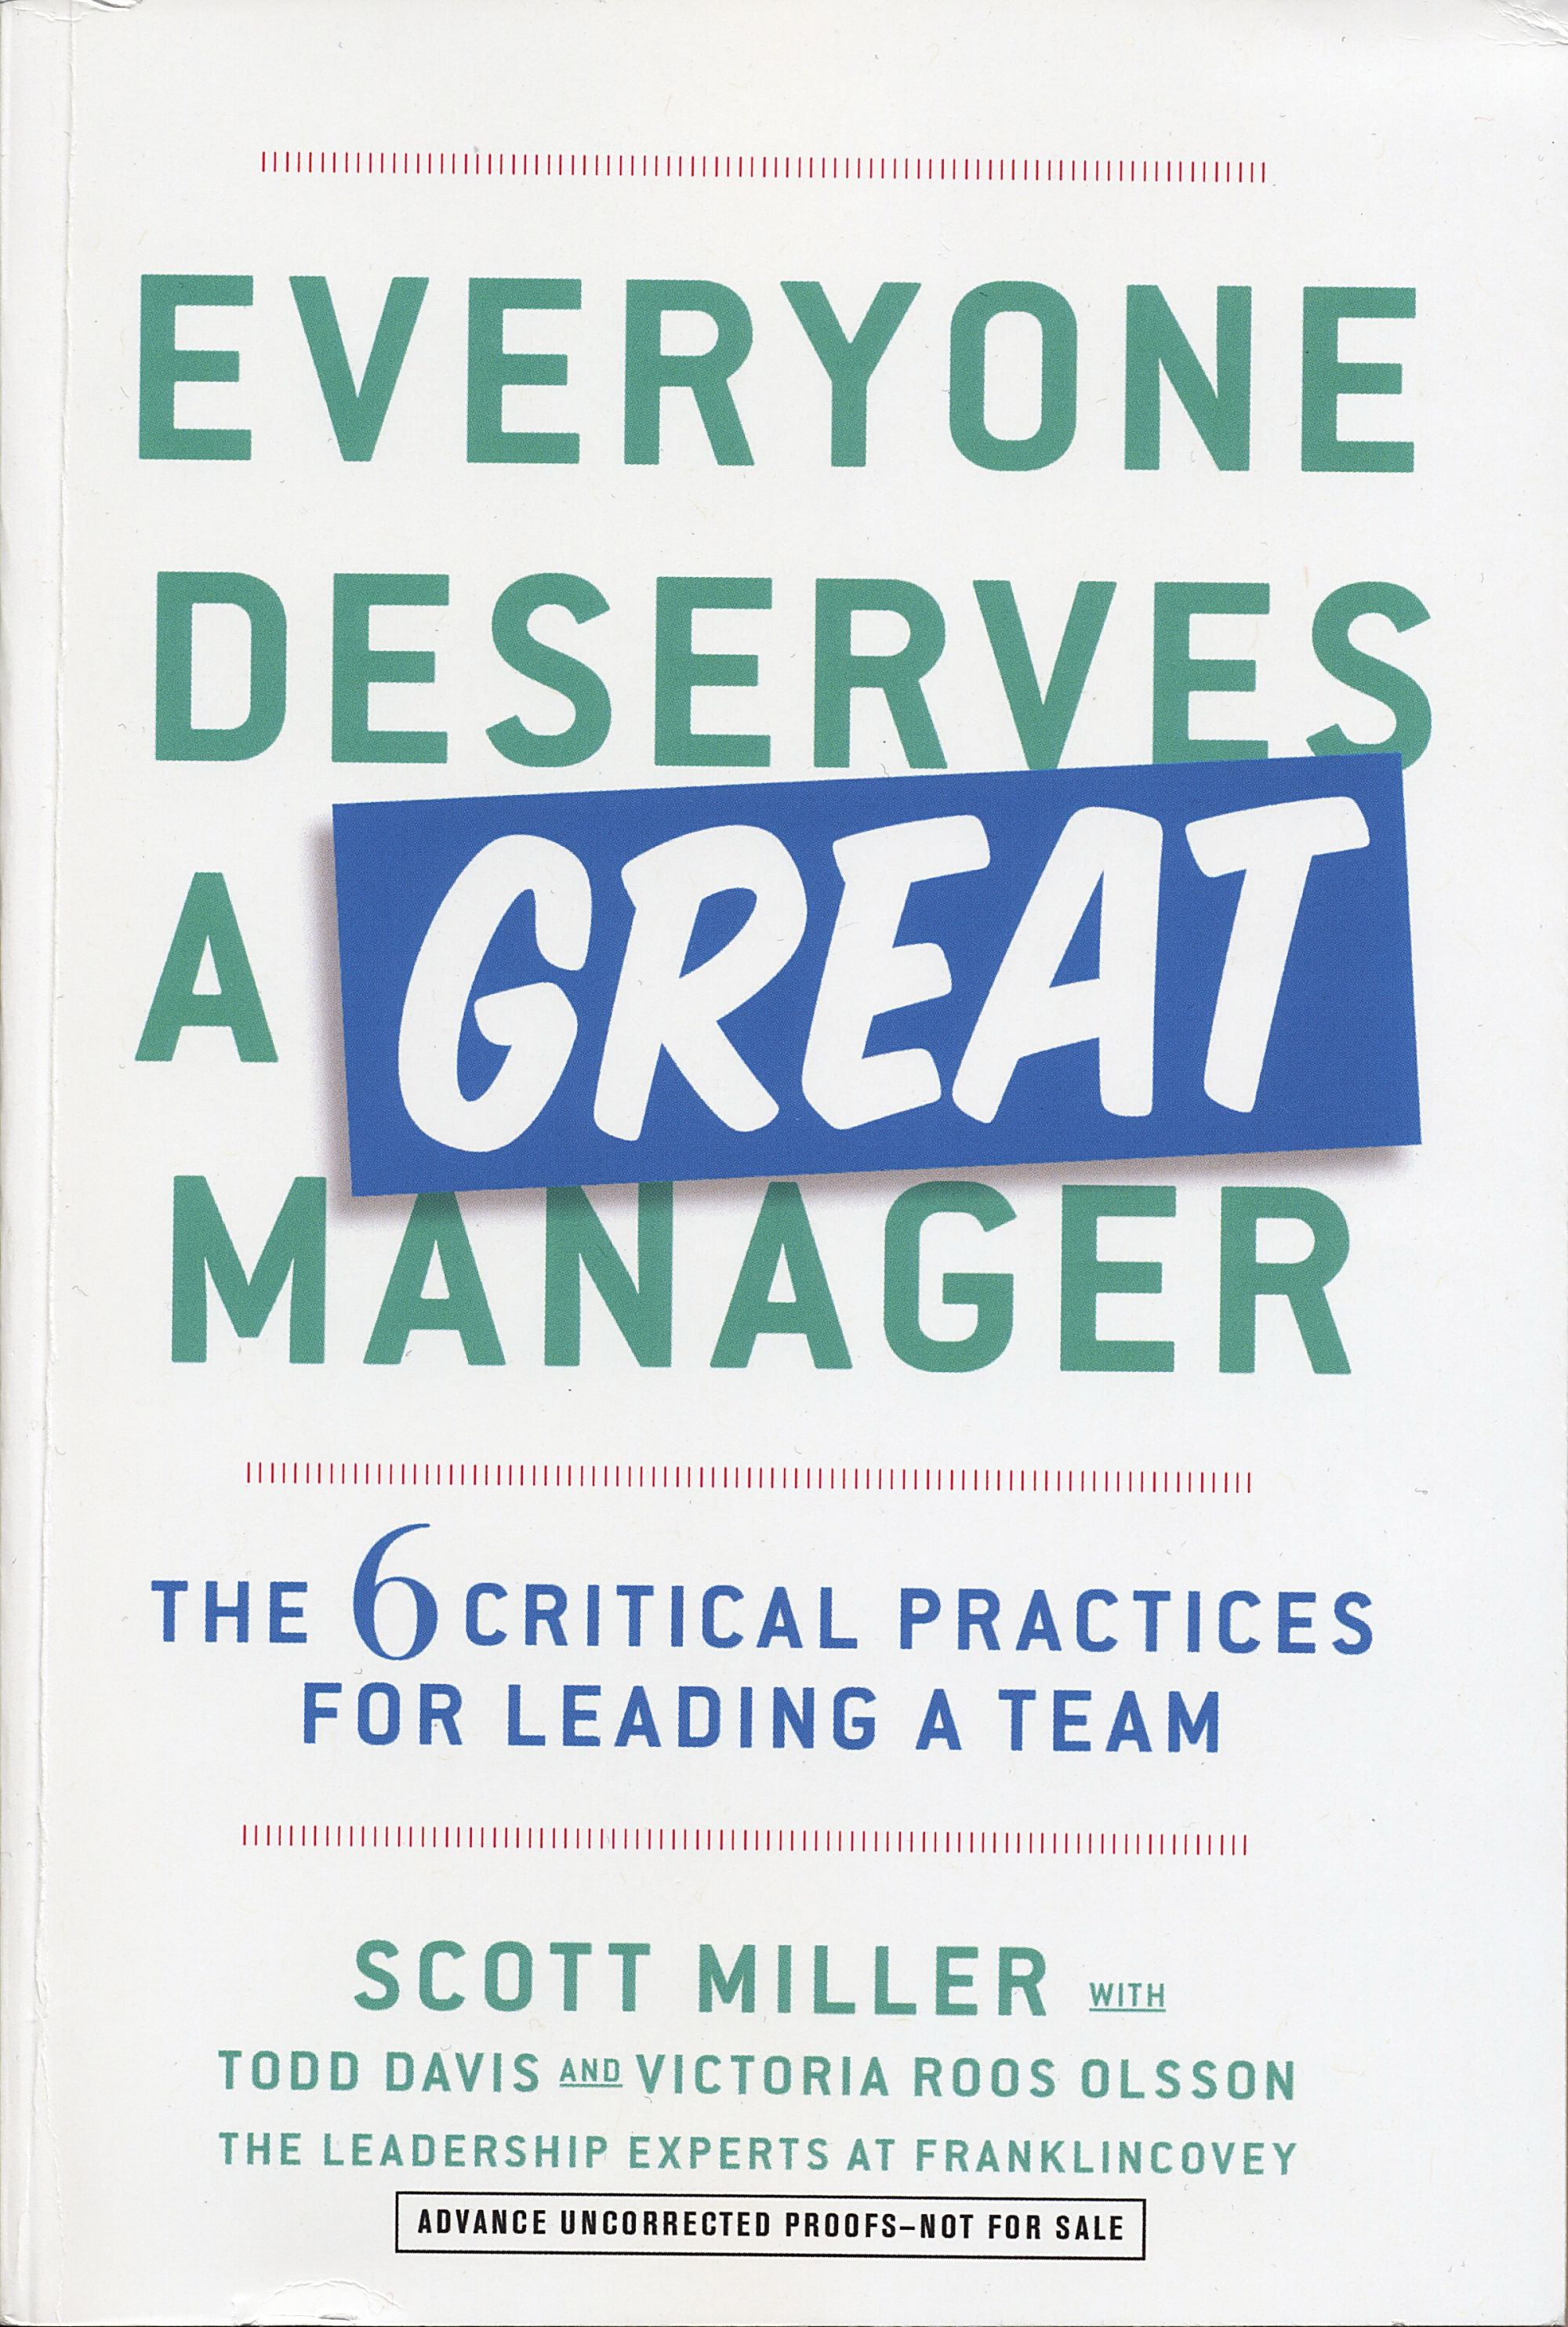 New FranklinCovey book outlines an effective manager's mindset